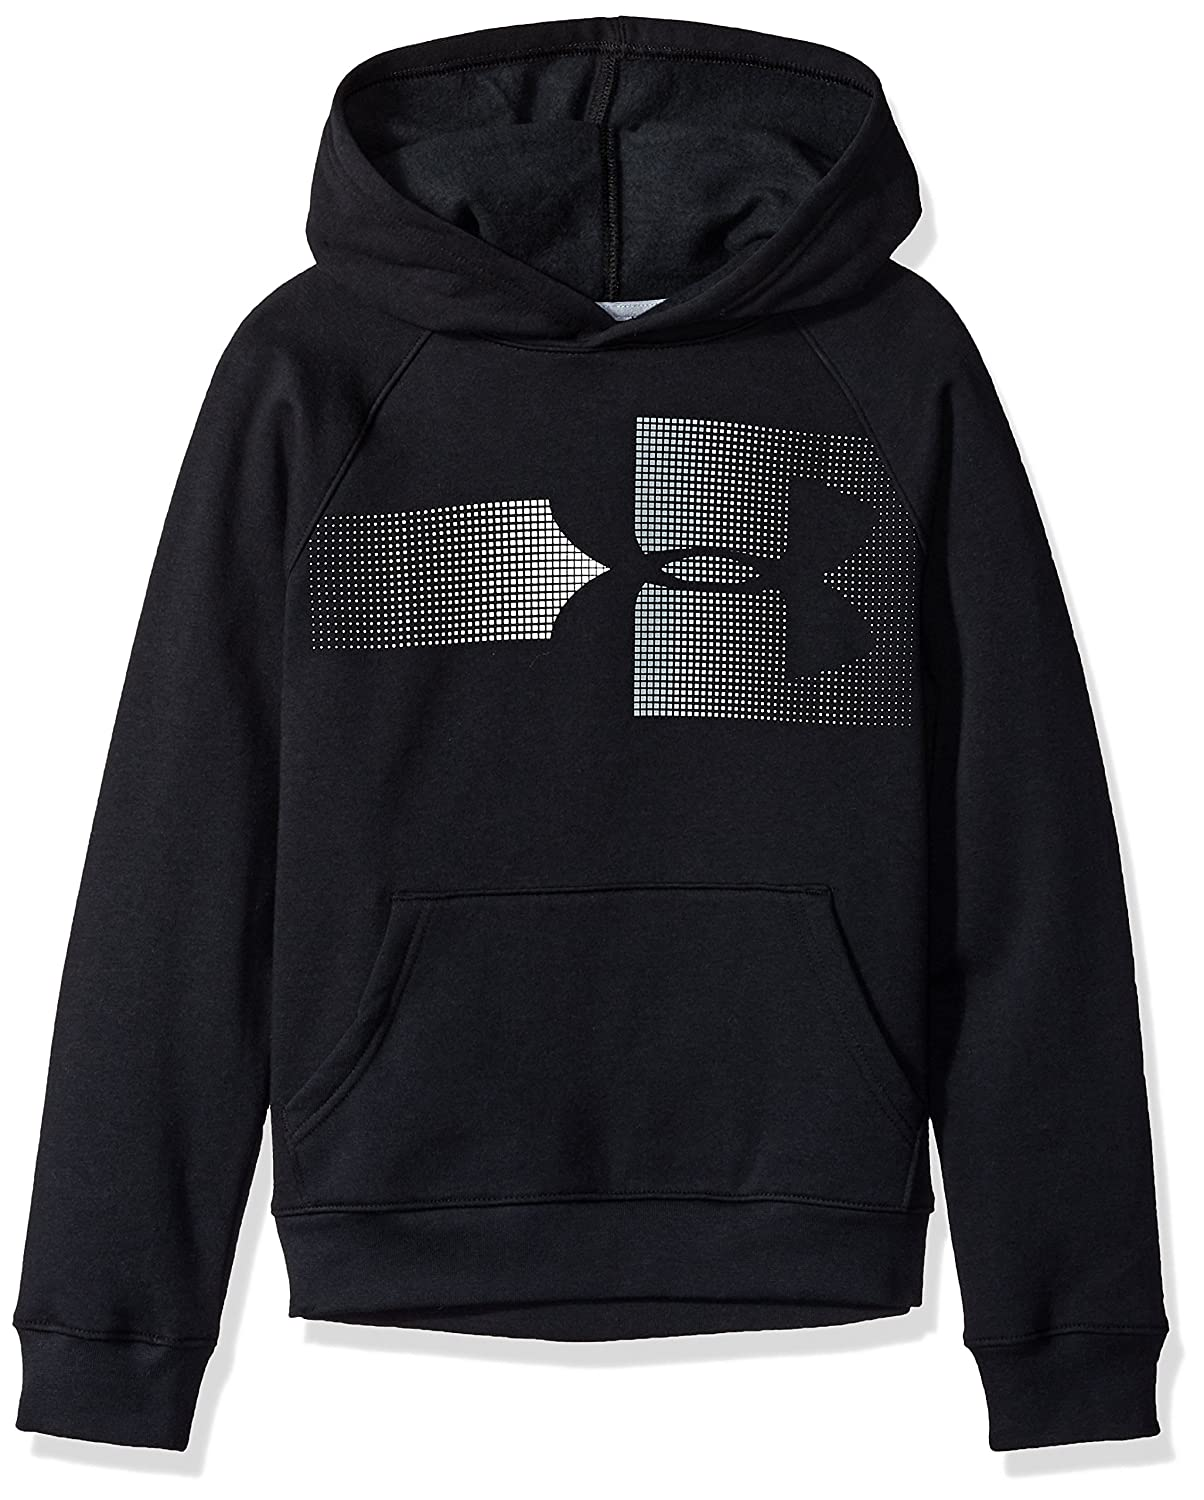 Under Armour Boys' Rival Logo Hoody Warm-up Top 1318220